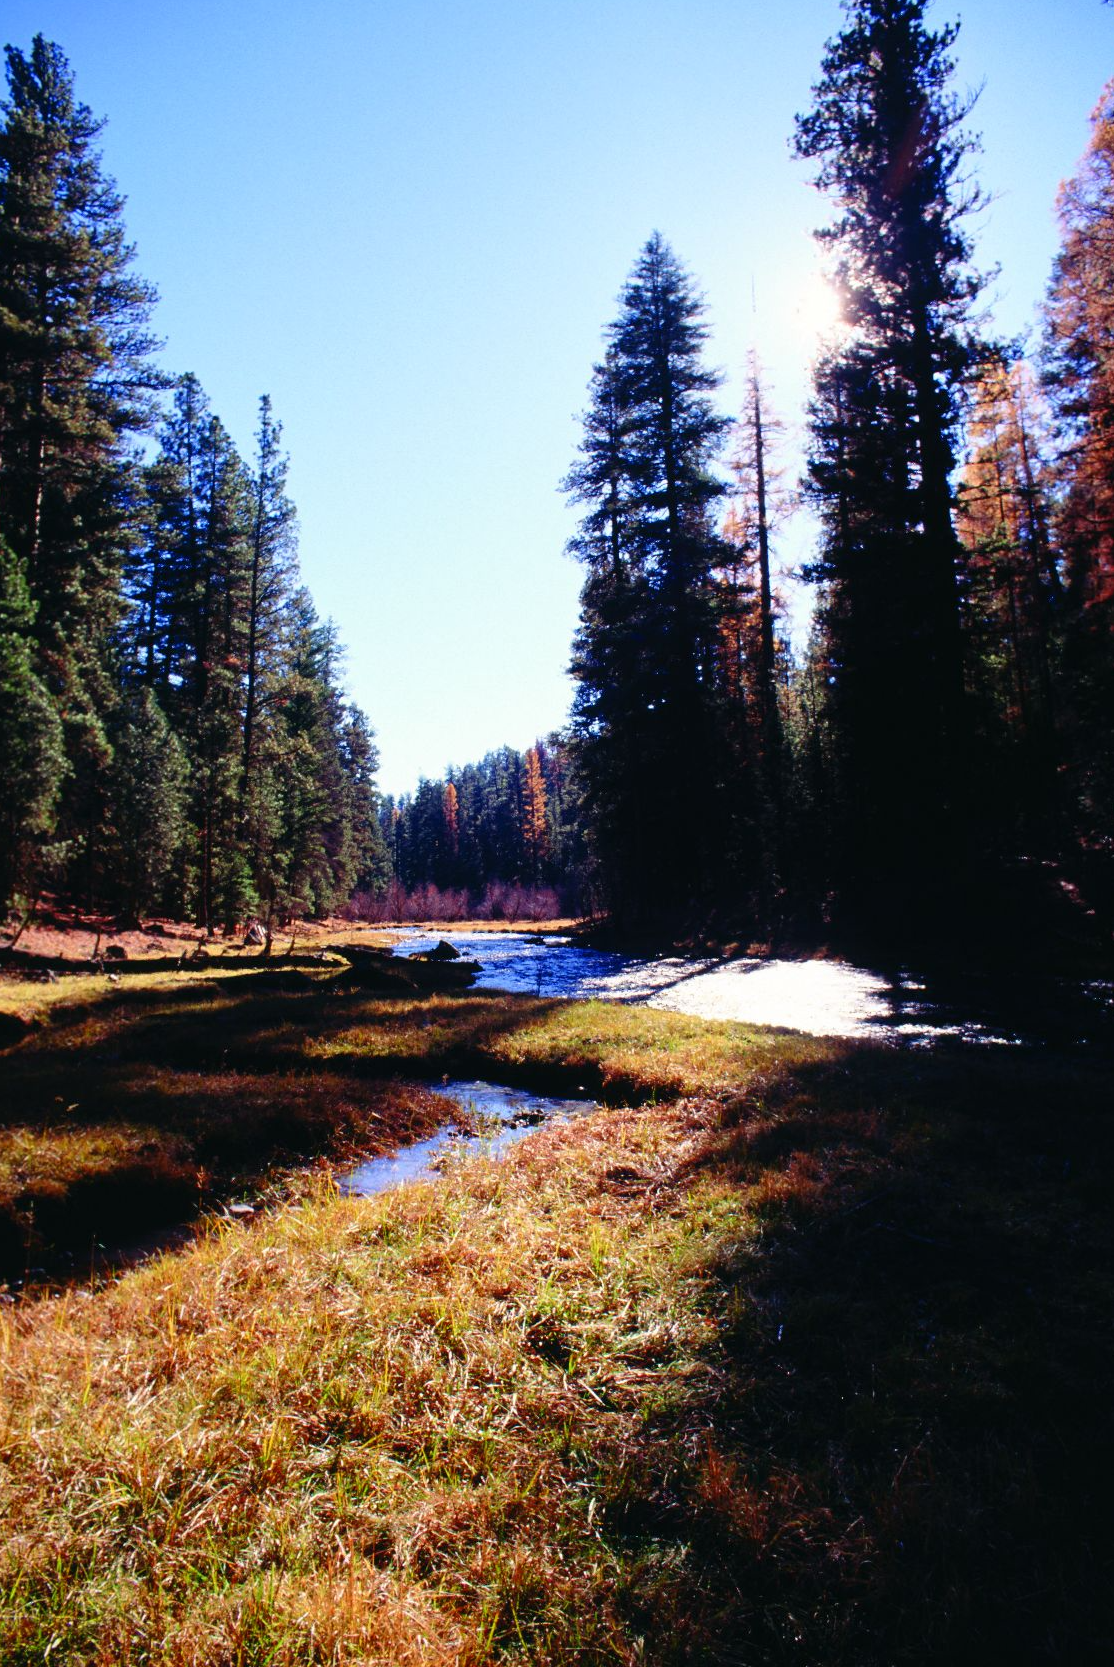 """- Figure 3. The North Fork Malheur Wild and Scenic River, established in 1988. Not only should additional mainstem below the national forest boundary be added, but also should its Bear Creek and Sheep Creek tributaries. In addition, a segment of the mainstem that is currently classified as """"scenic"""" should be upgraded to """"wild."""" Source: Sandy Lonsdale (first appeared in Oregon Wild: Endangered Forest Wilderness)."""